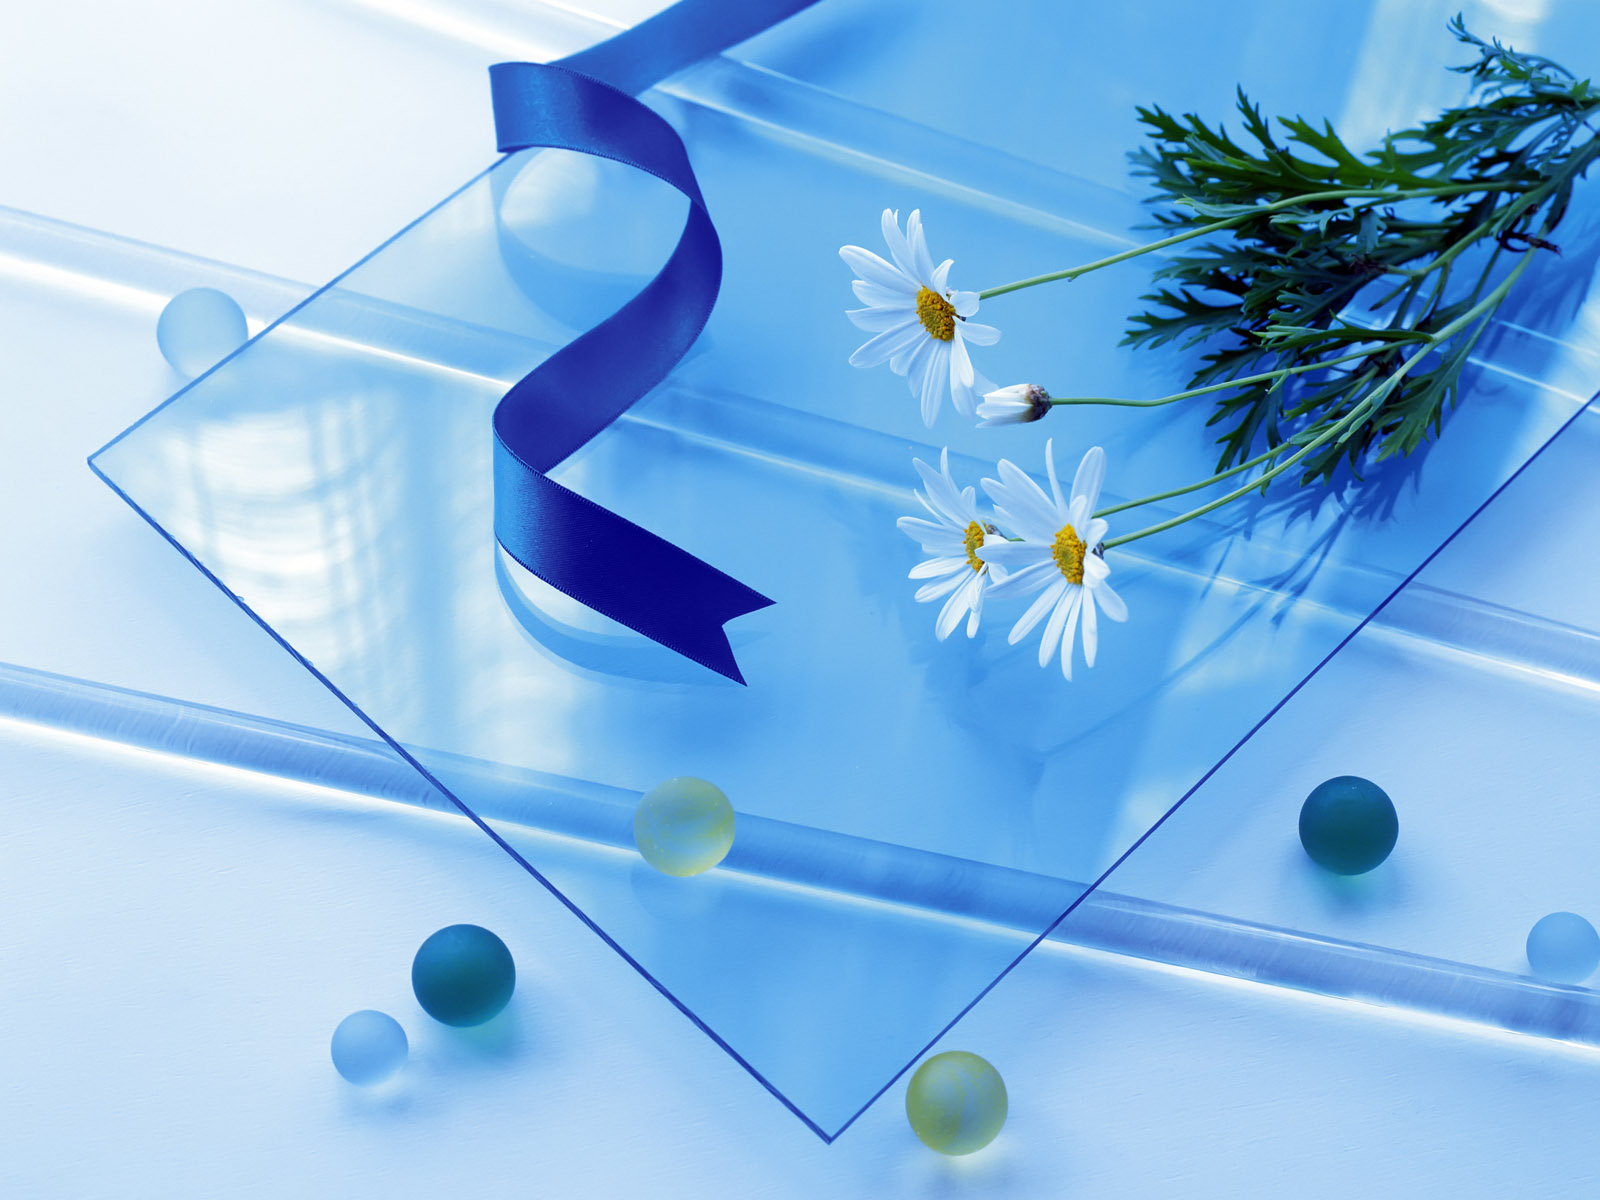 Image Flowers On Glass Wallpapers And Stock Photos